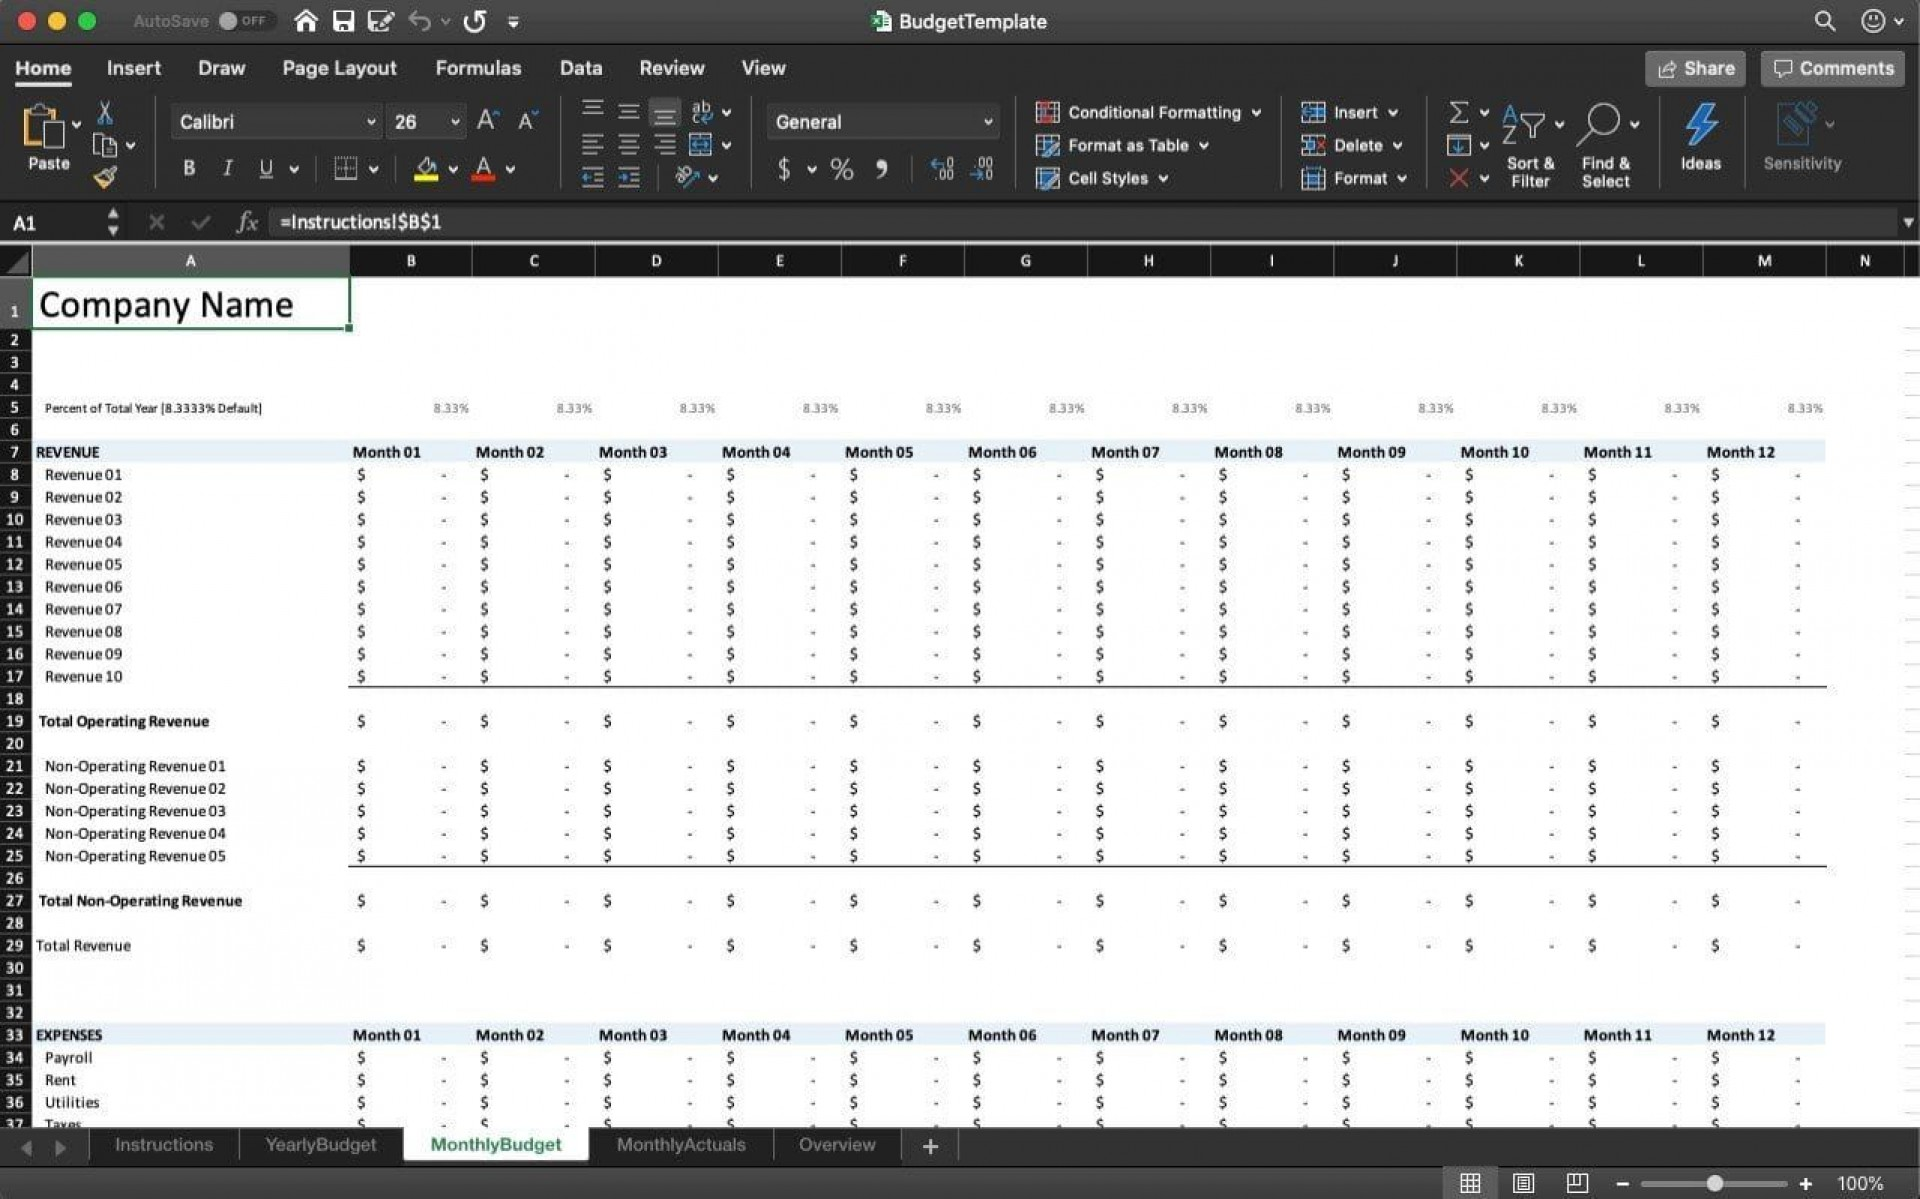 004 Simple Weekly Cash Flow Template Excel Idea  Forecast Free1920